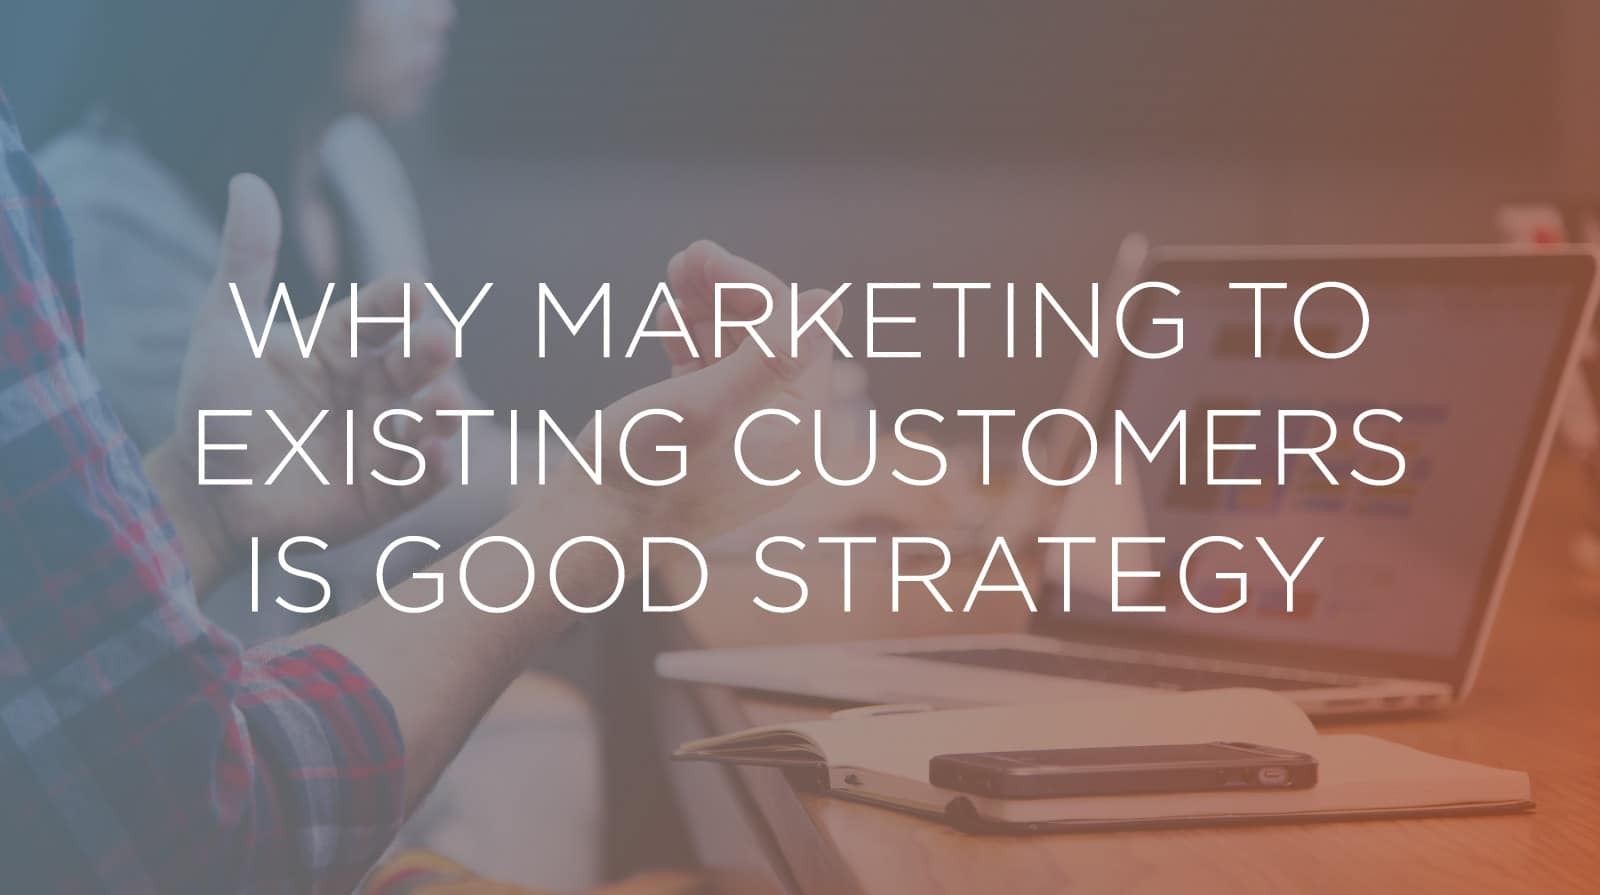 Why Marketing to Existing Customers Is Good Strategy